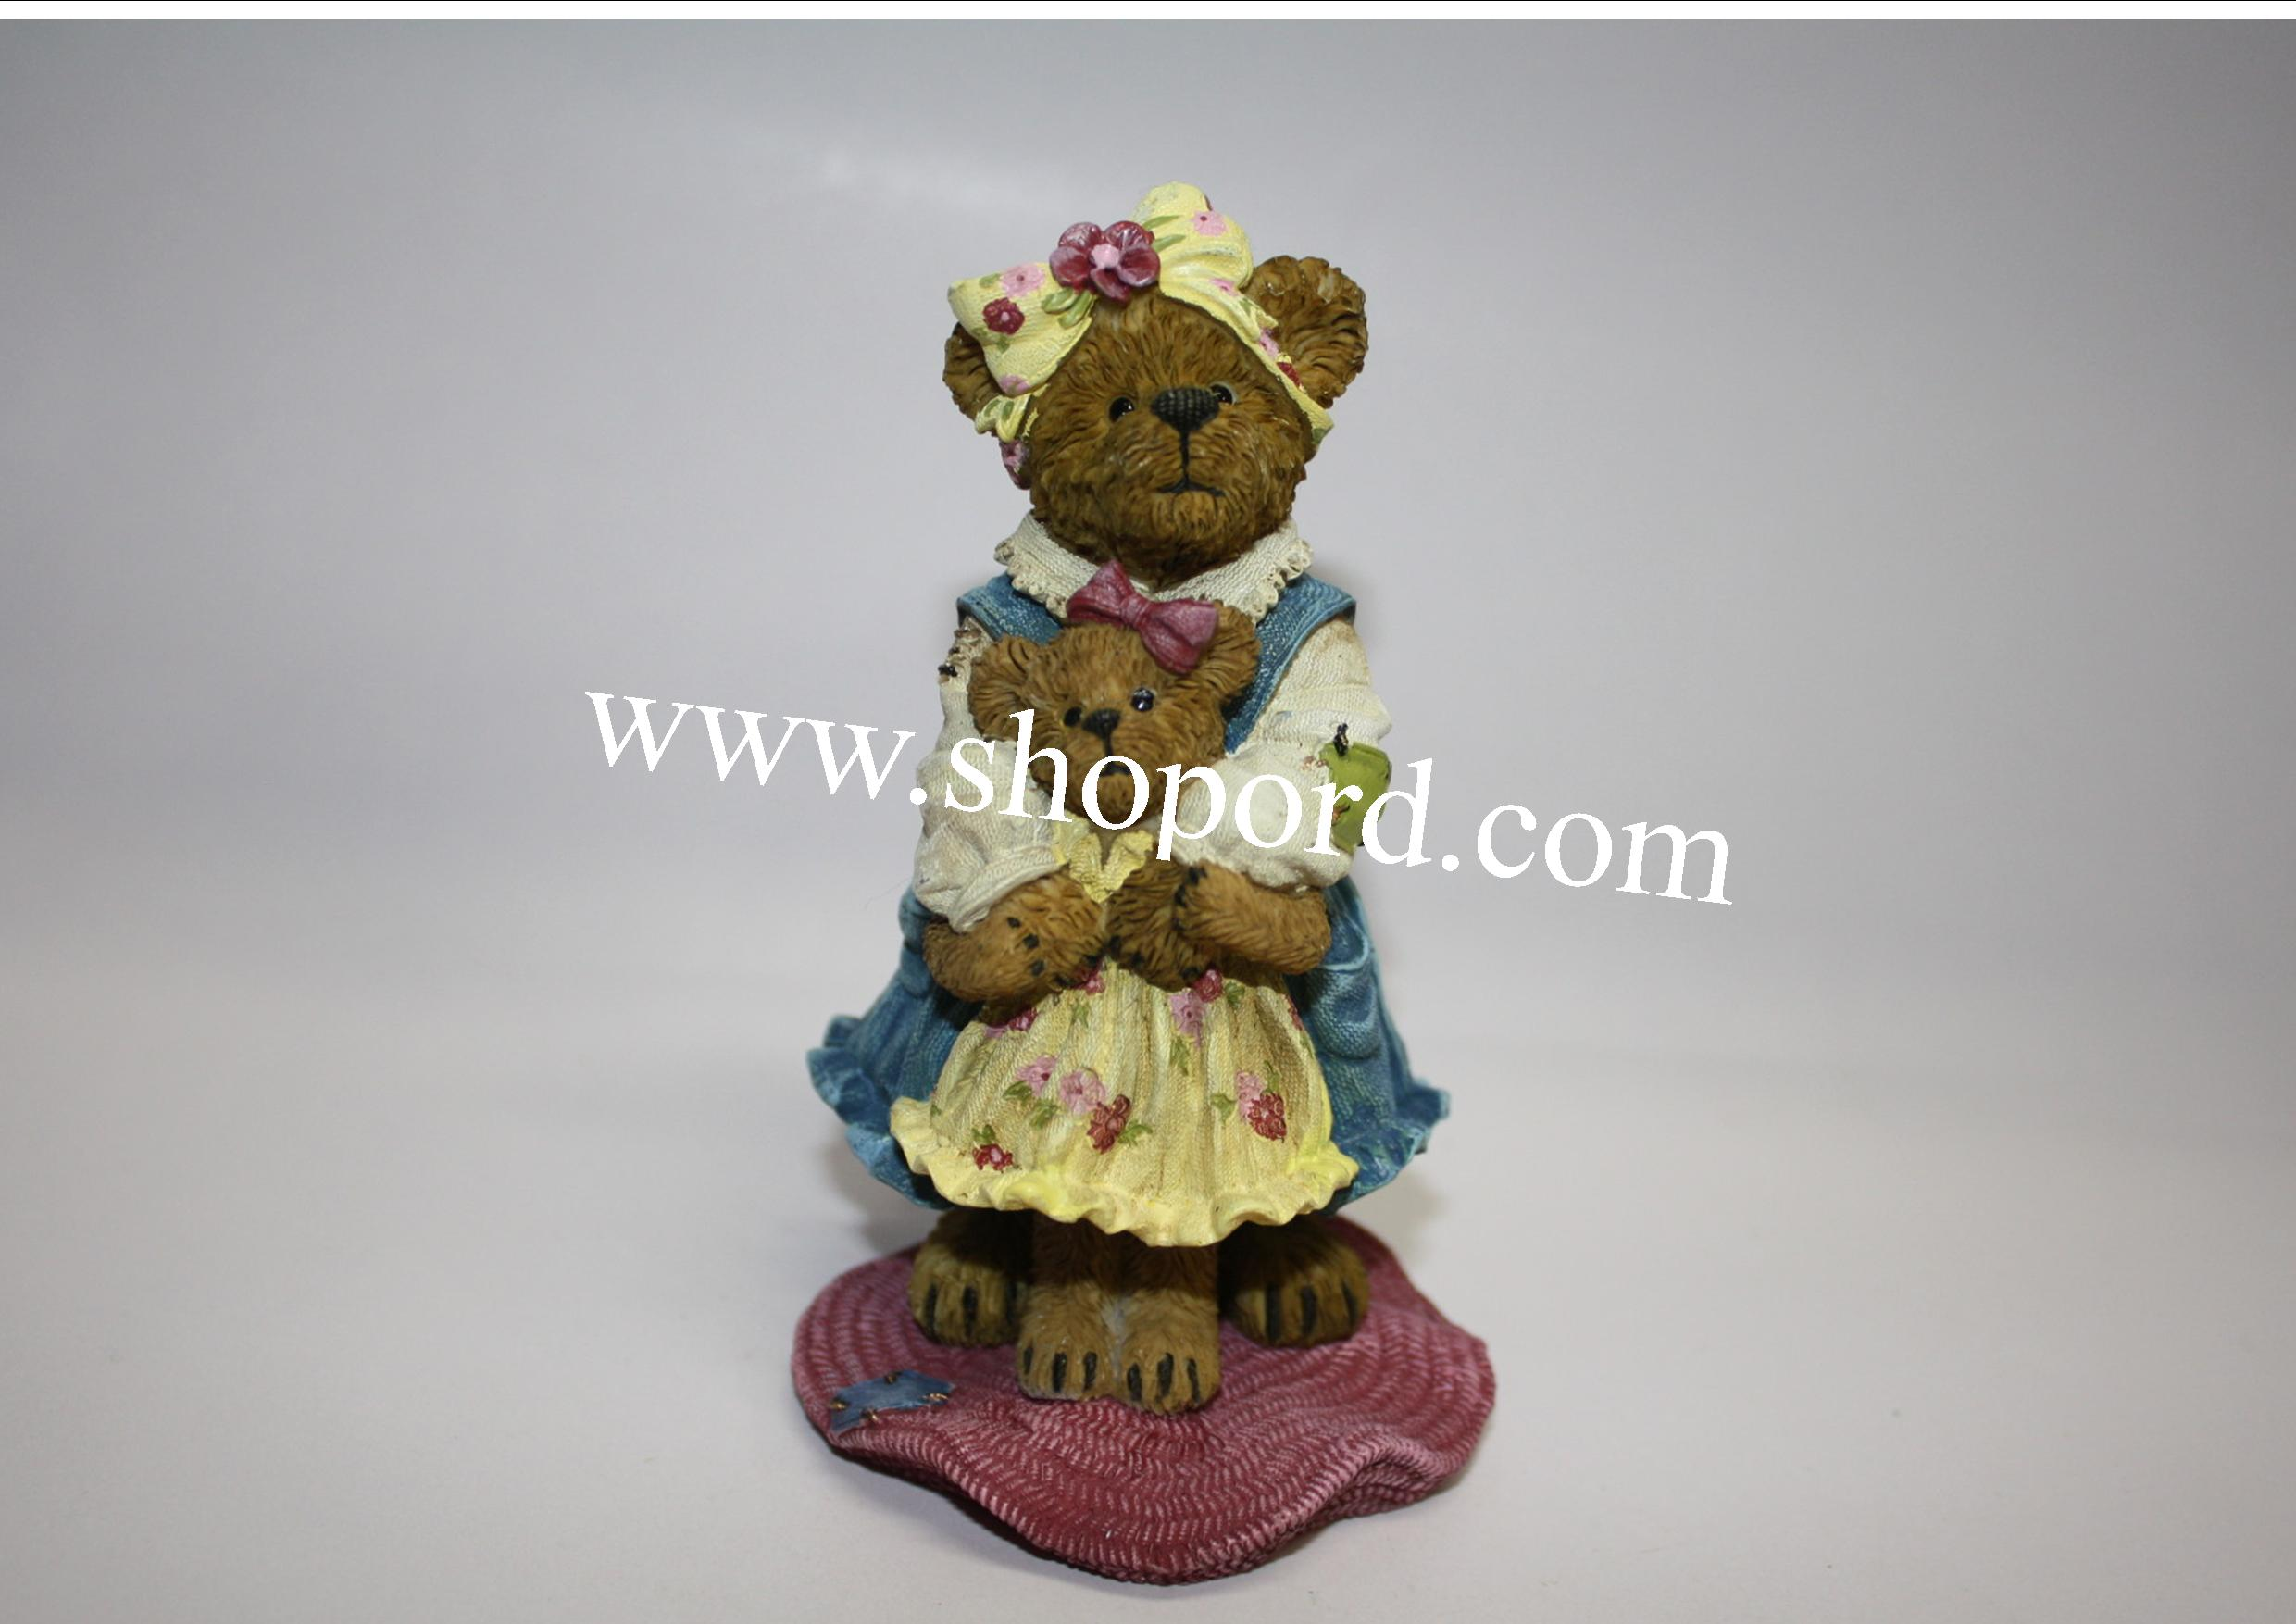 Boyds The Bearstone Collection - Momma McPetal with Lil Posey #4033639